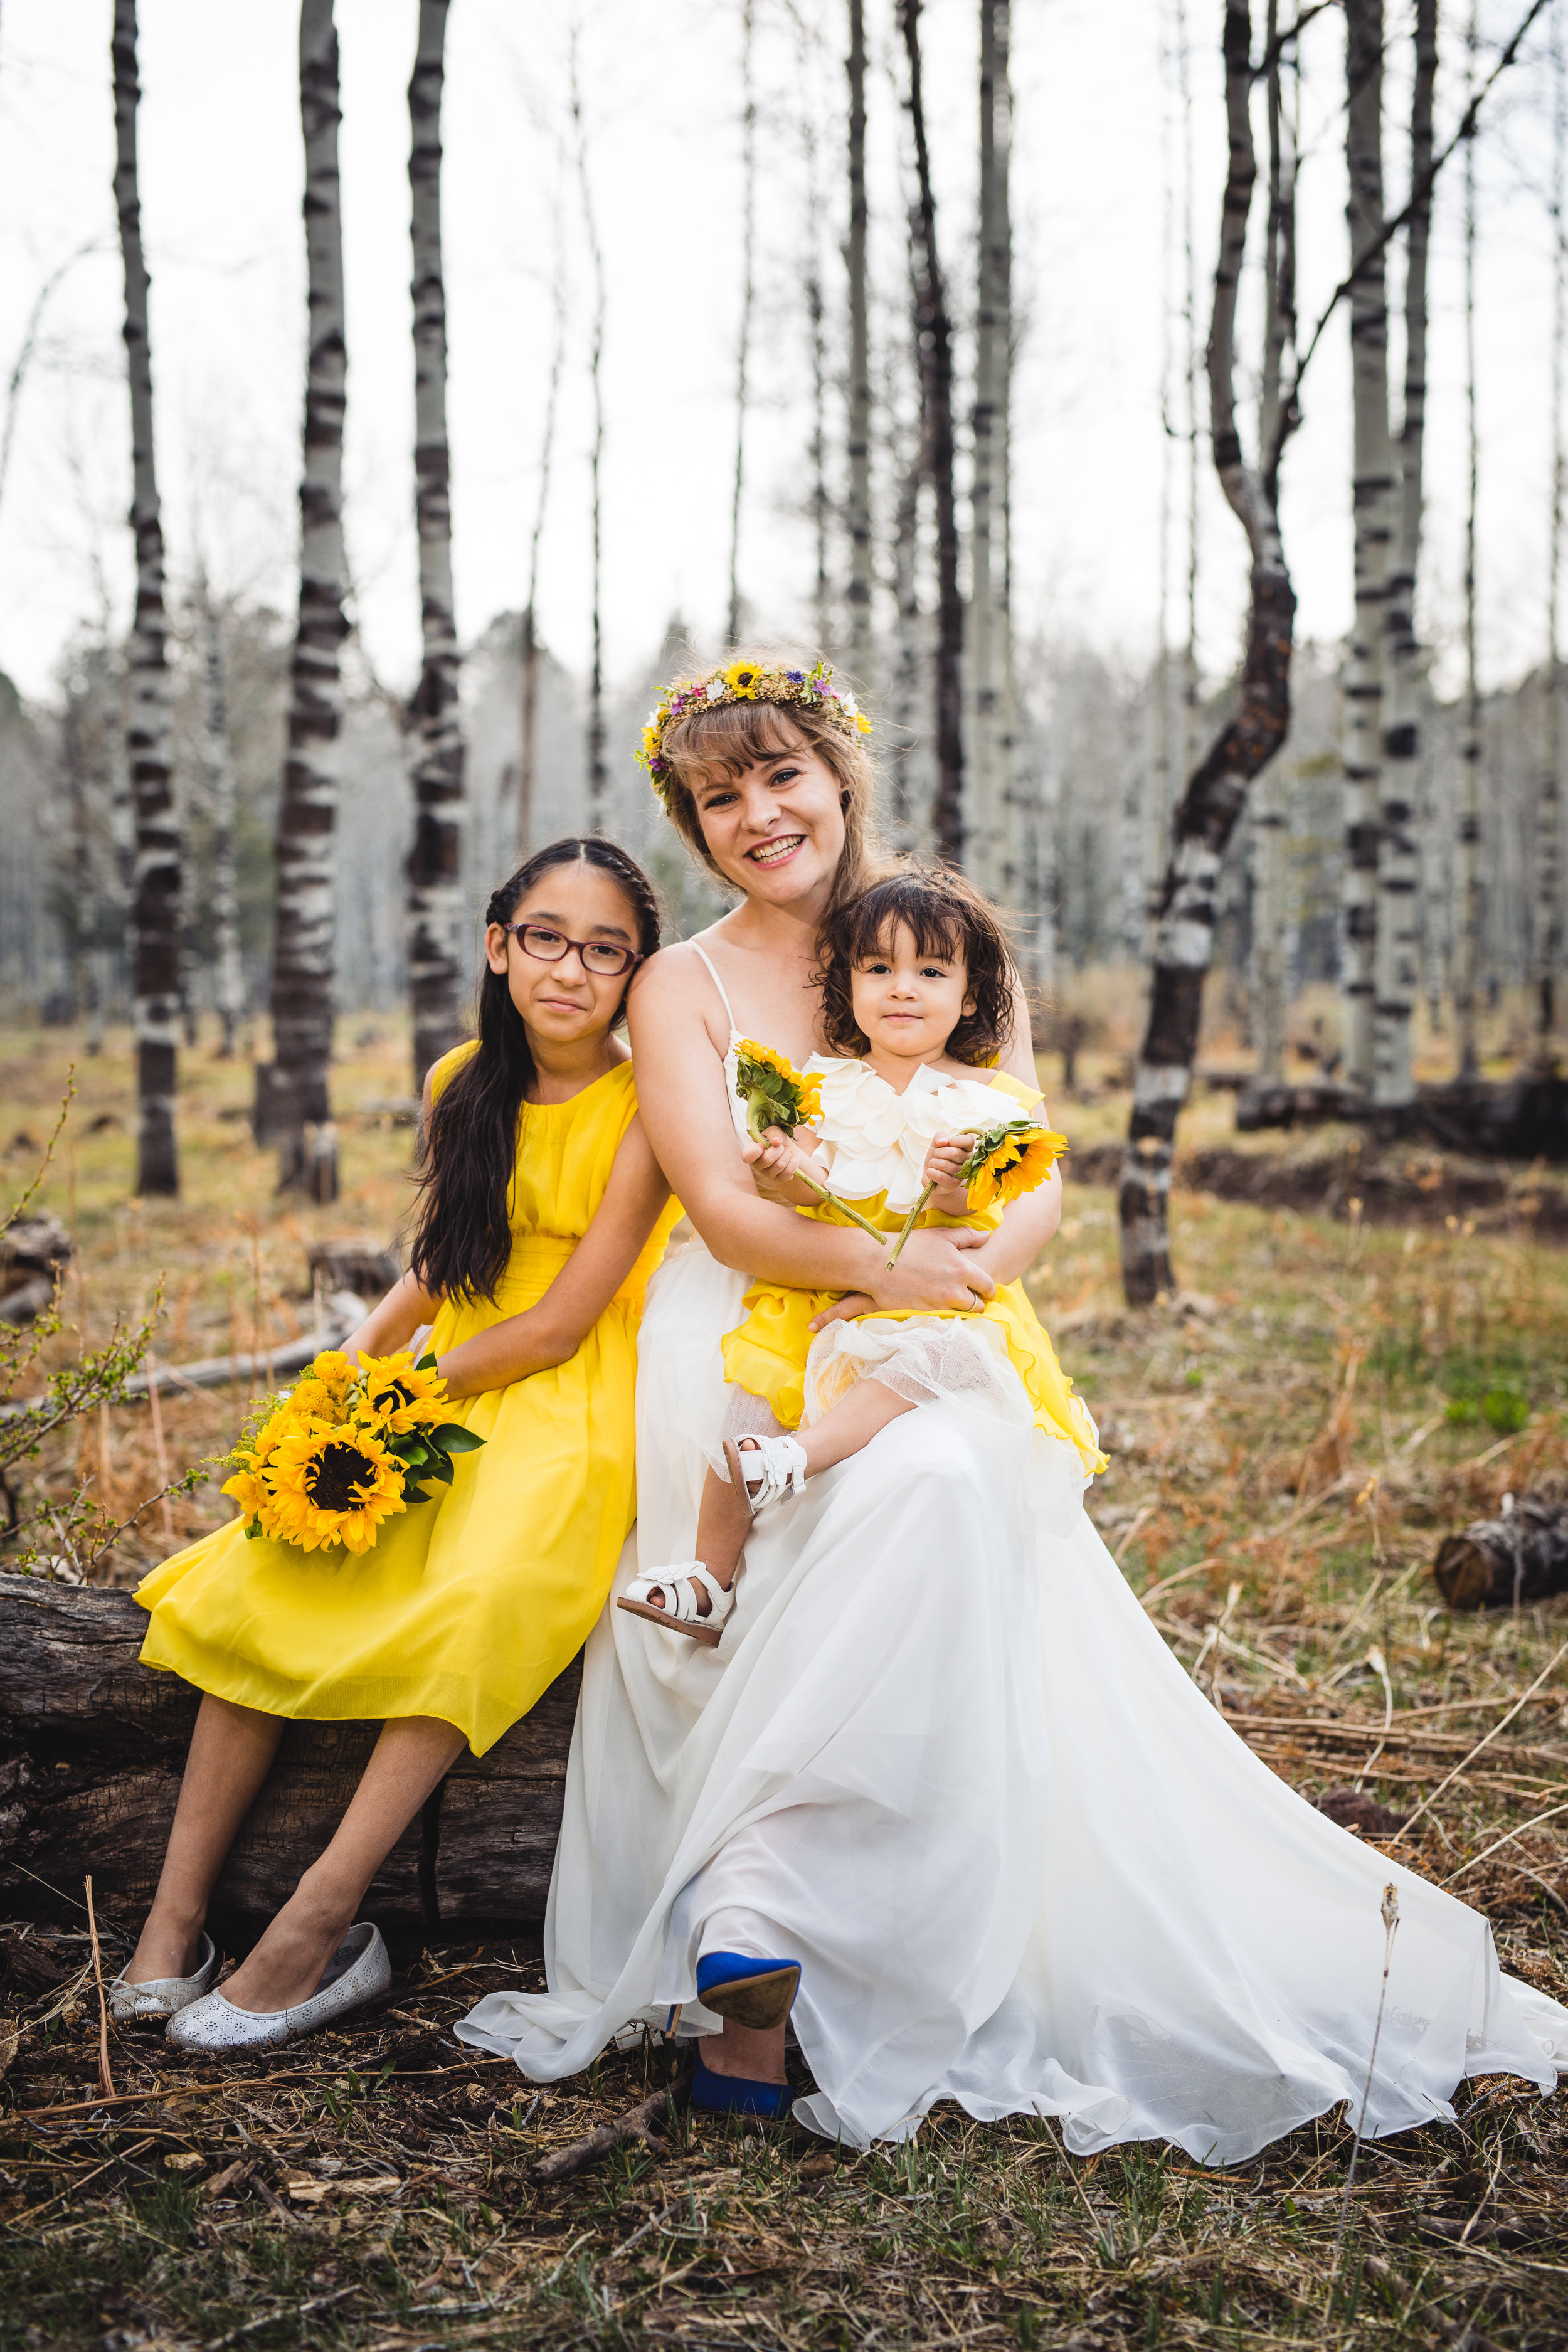 Hart_Prairie_elopement_with_family-1